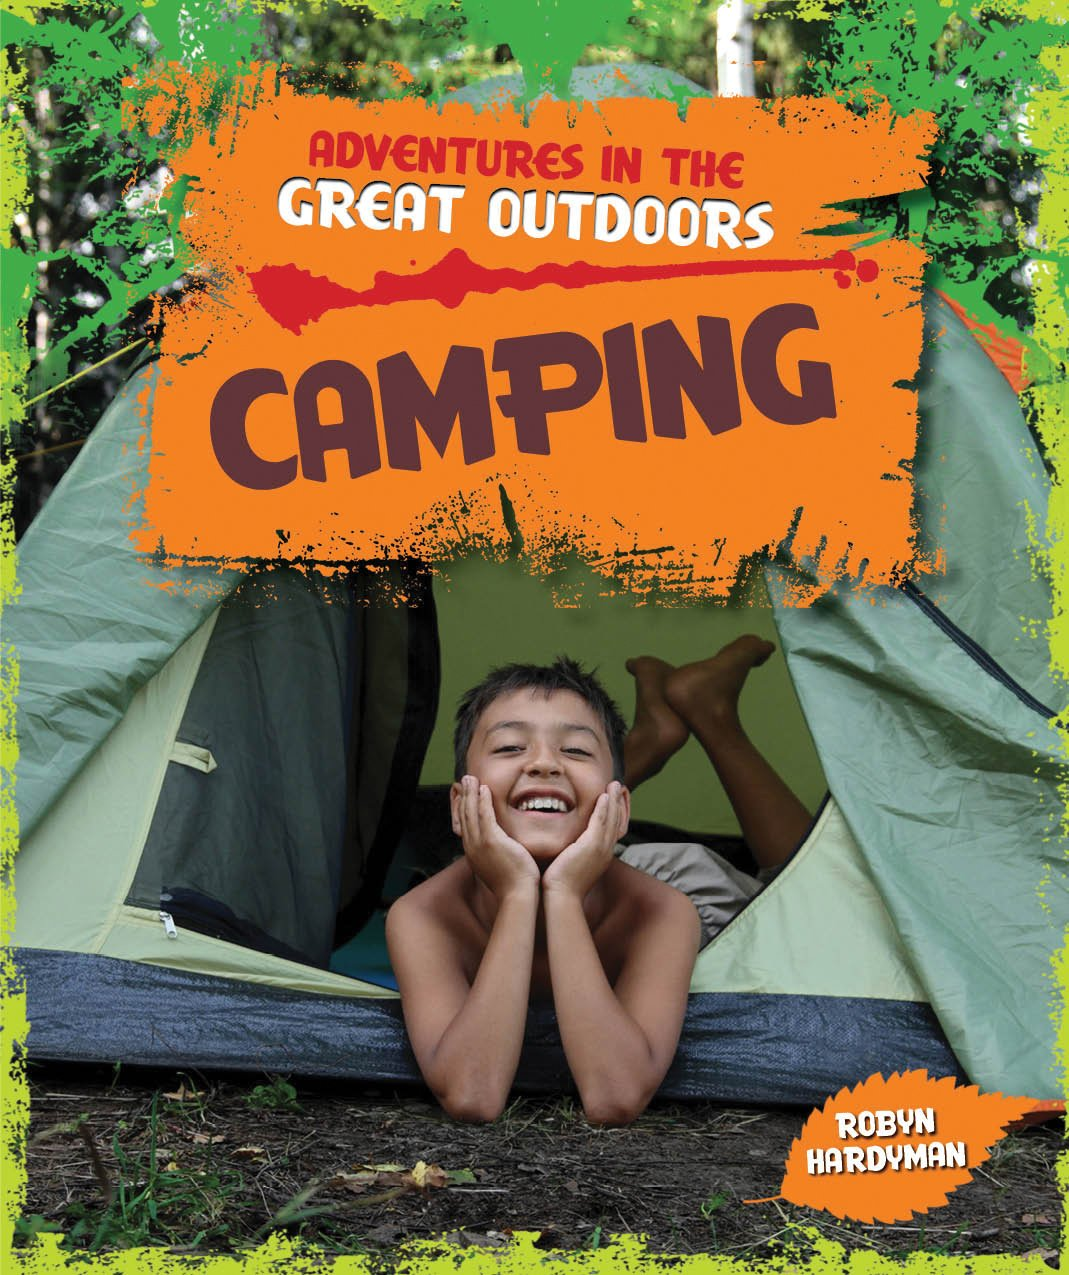 Camping (Adventures in the Great Outdoors)